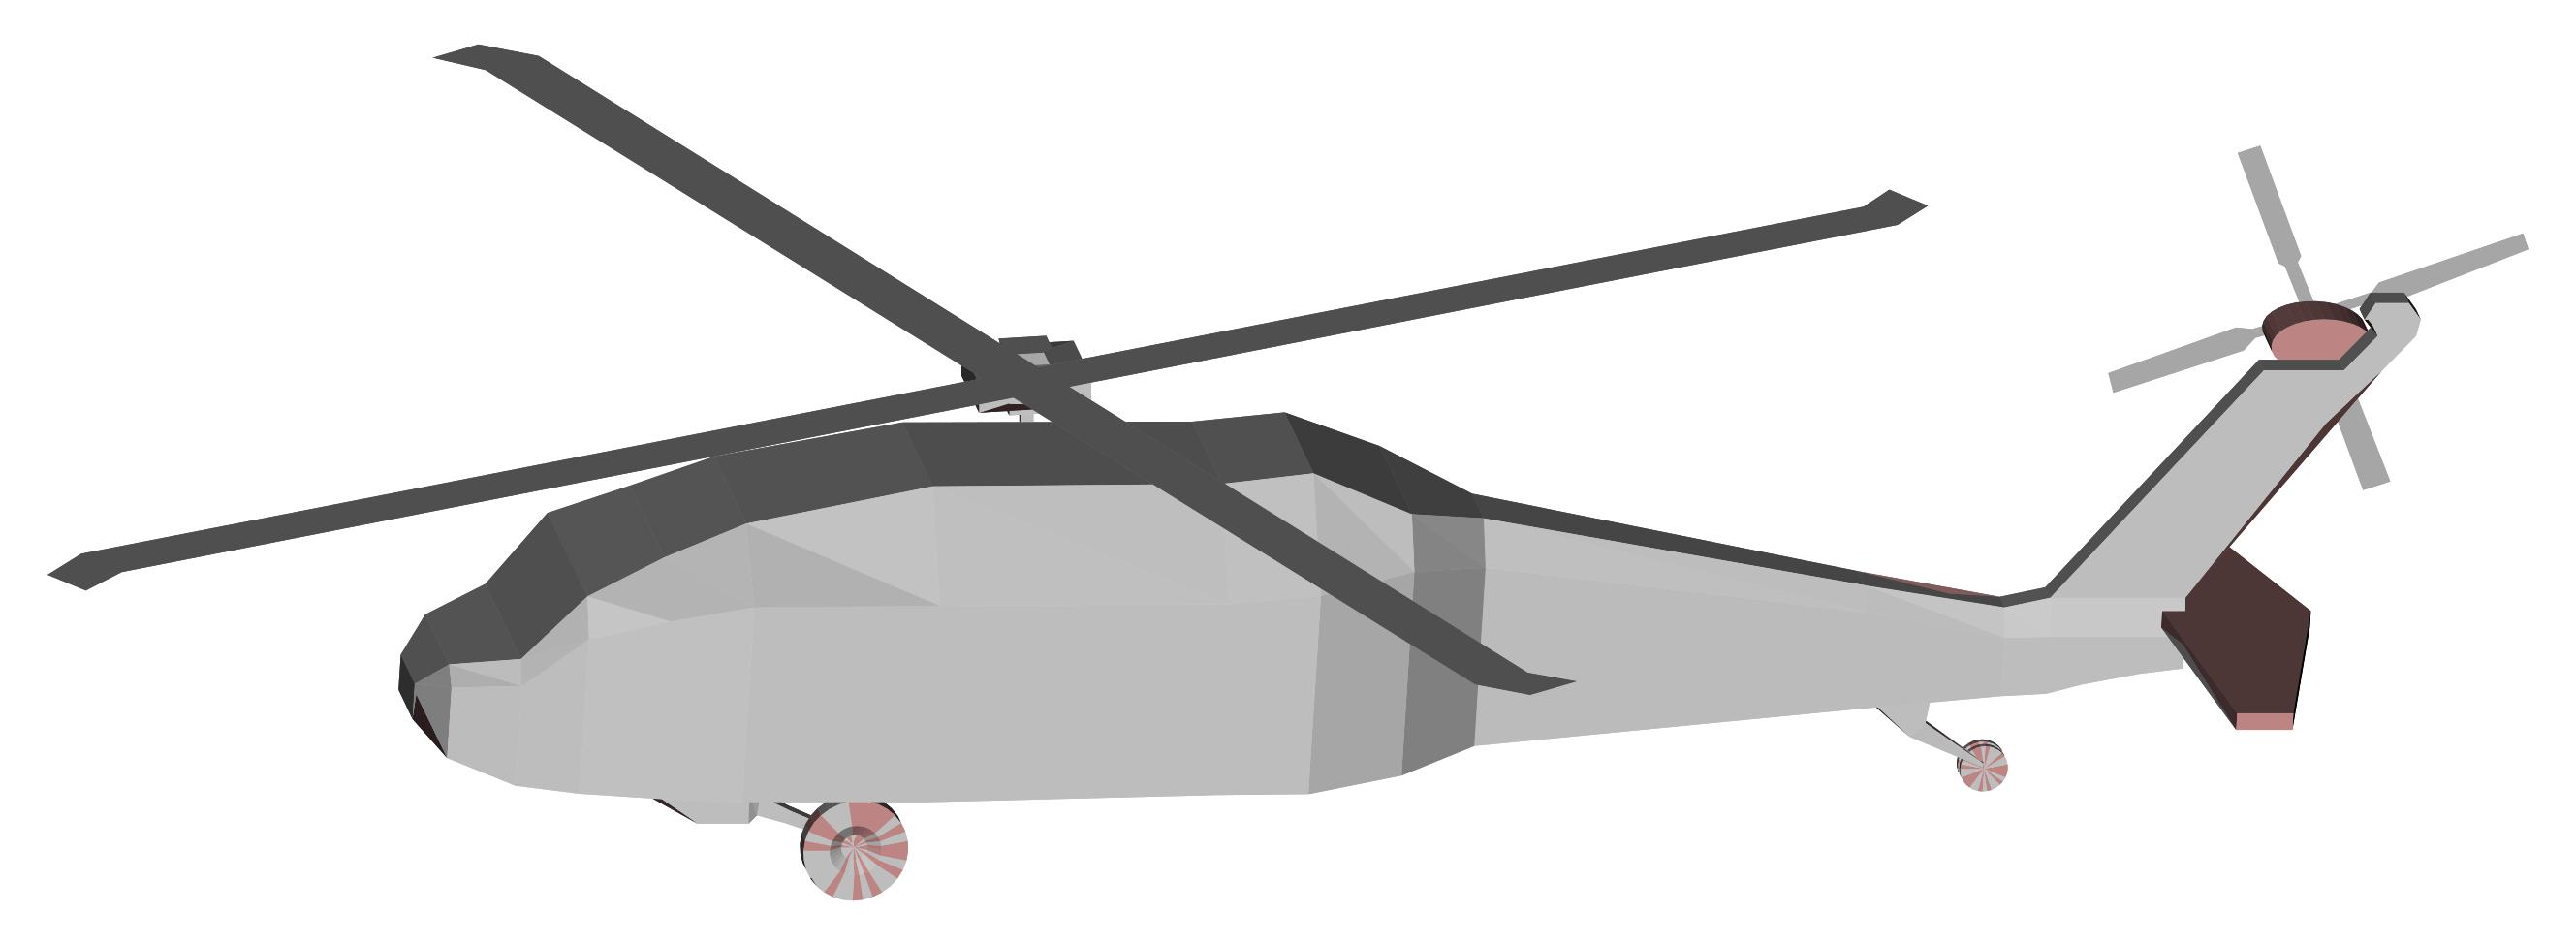 2658x975 3d Low Poly Blackhawk Helicopter Clipart